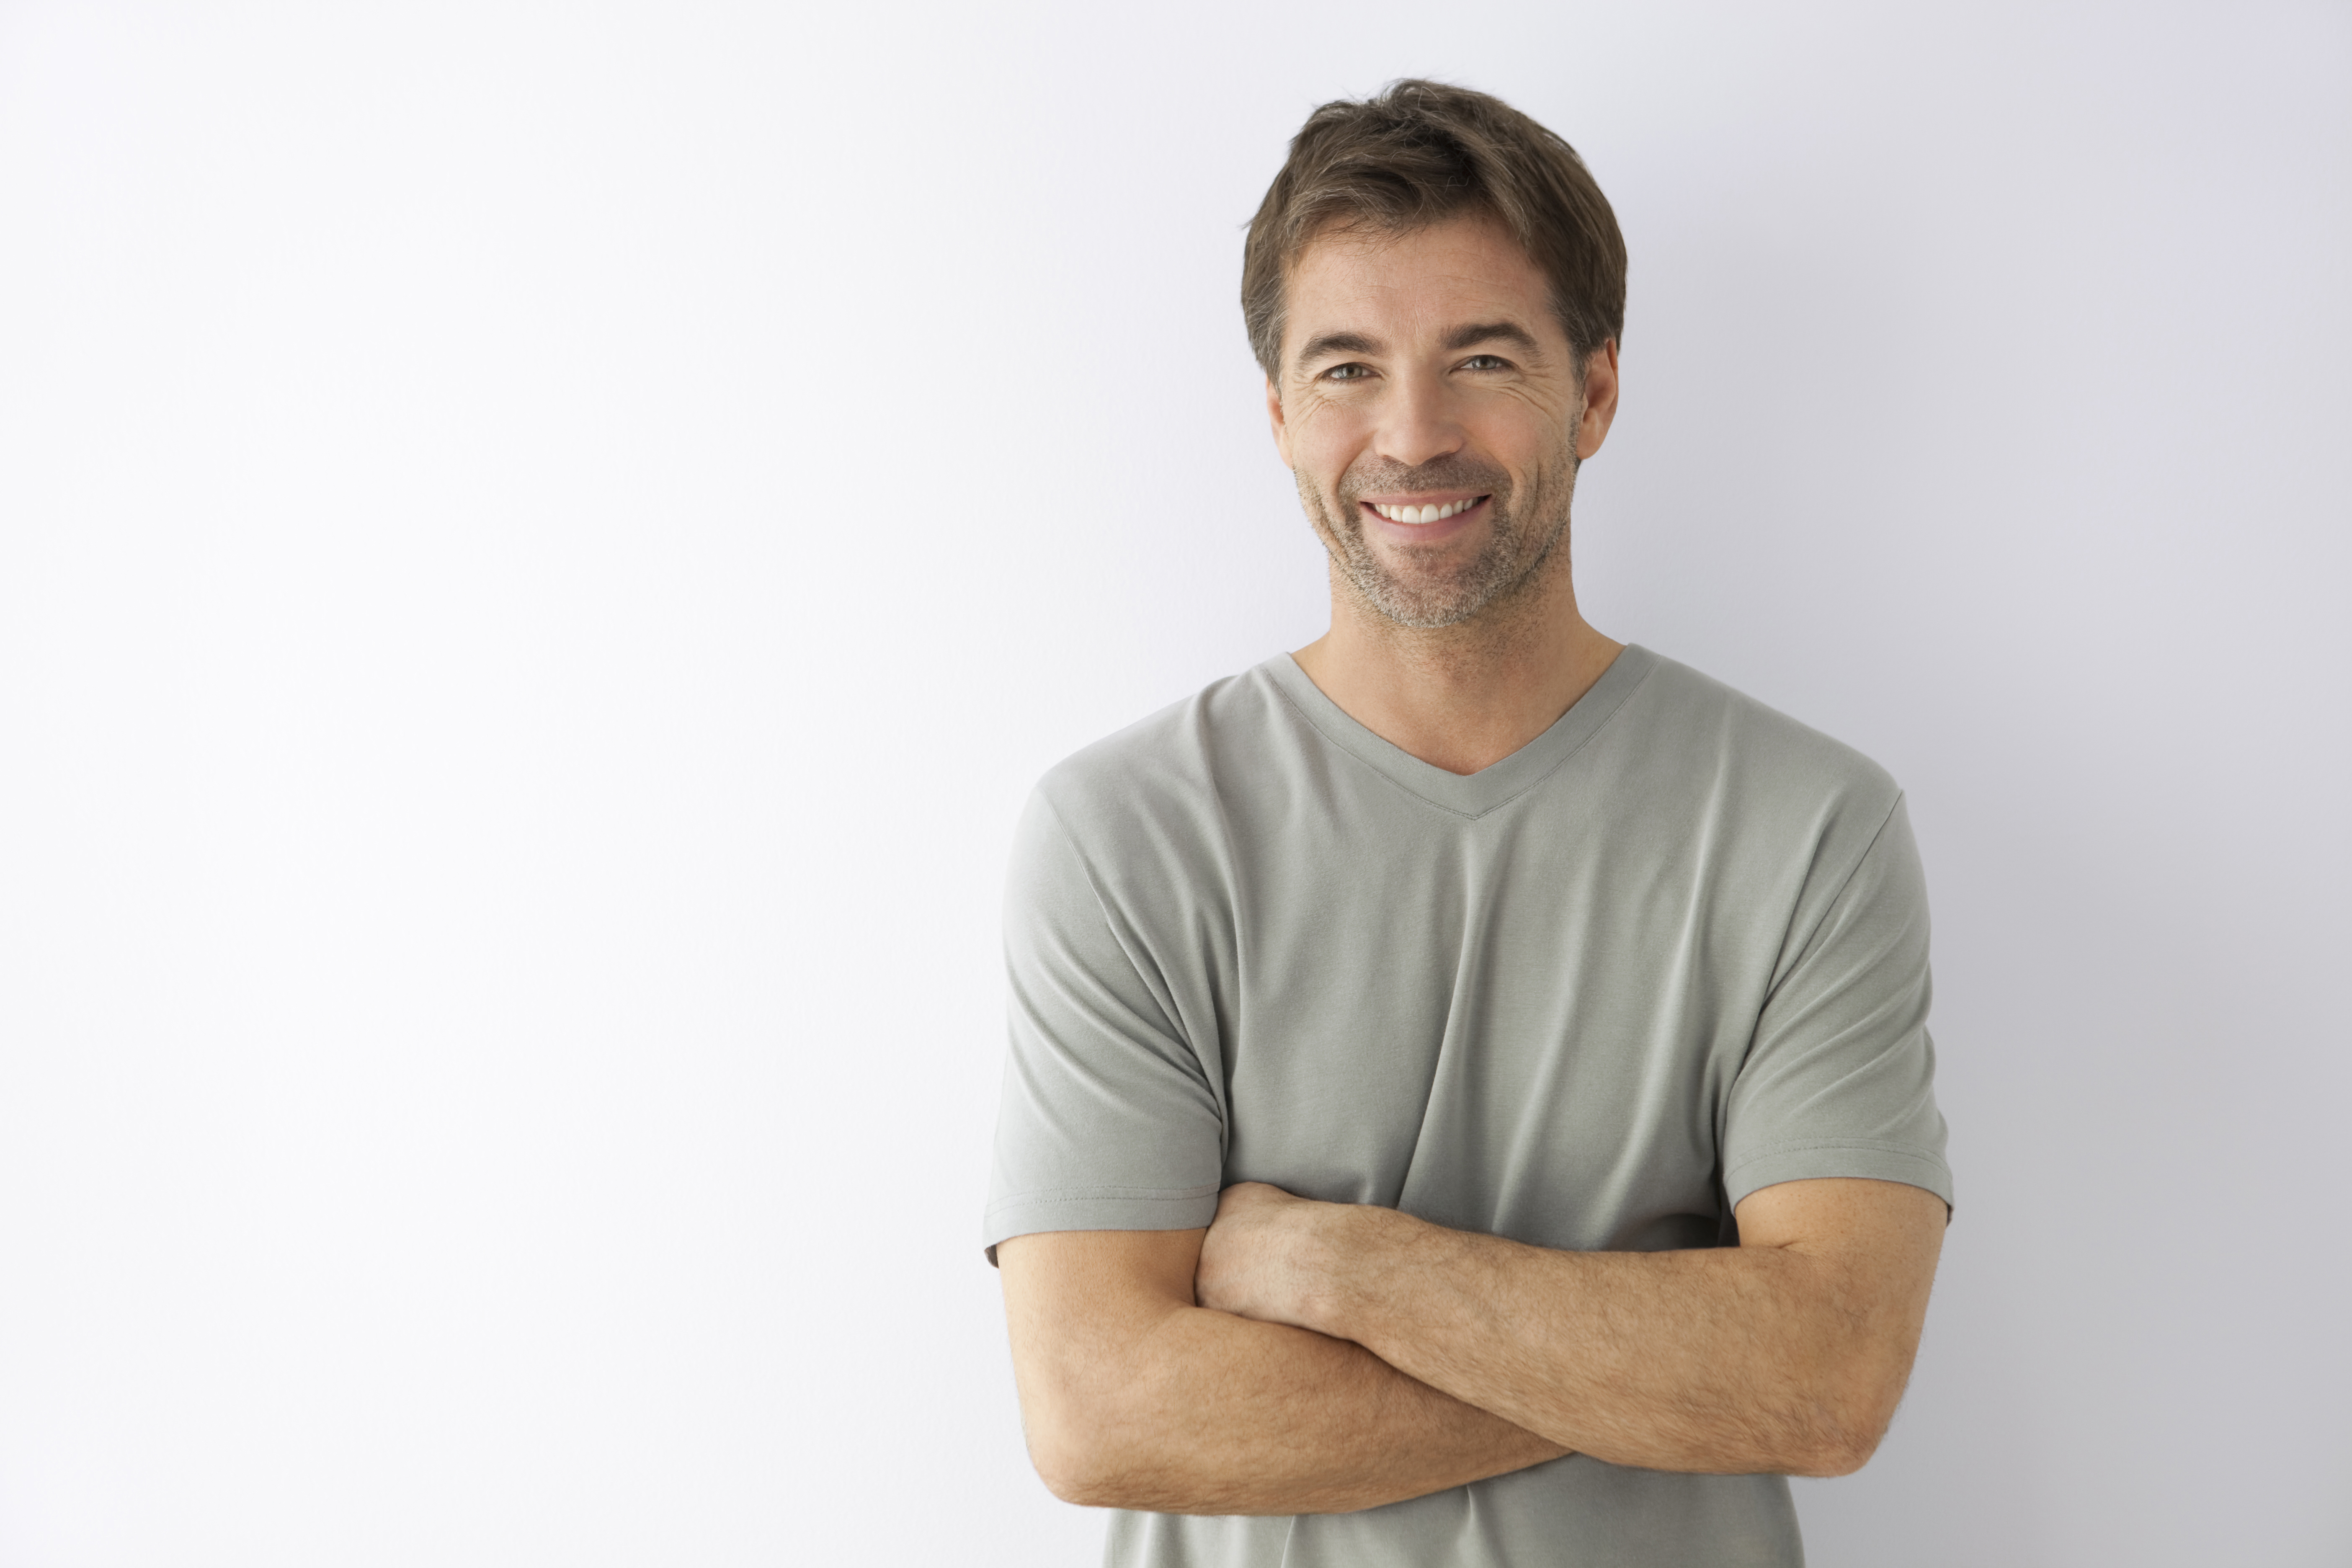 Cause Of Gynecomastia Louisville Physicians Center For